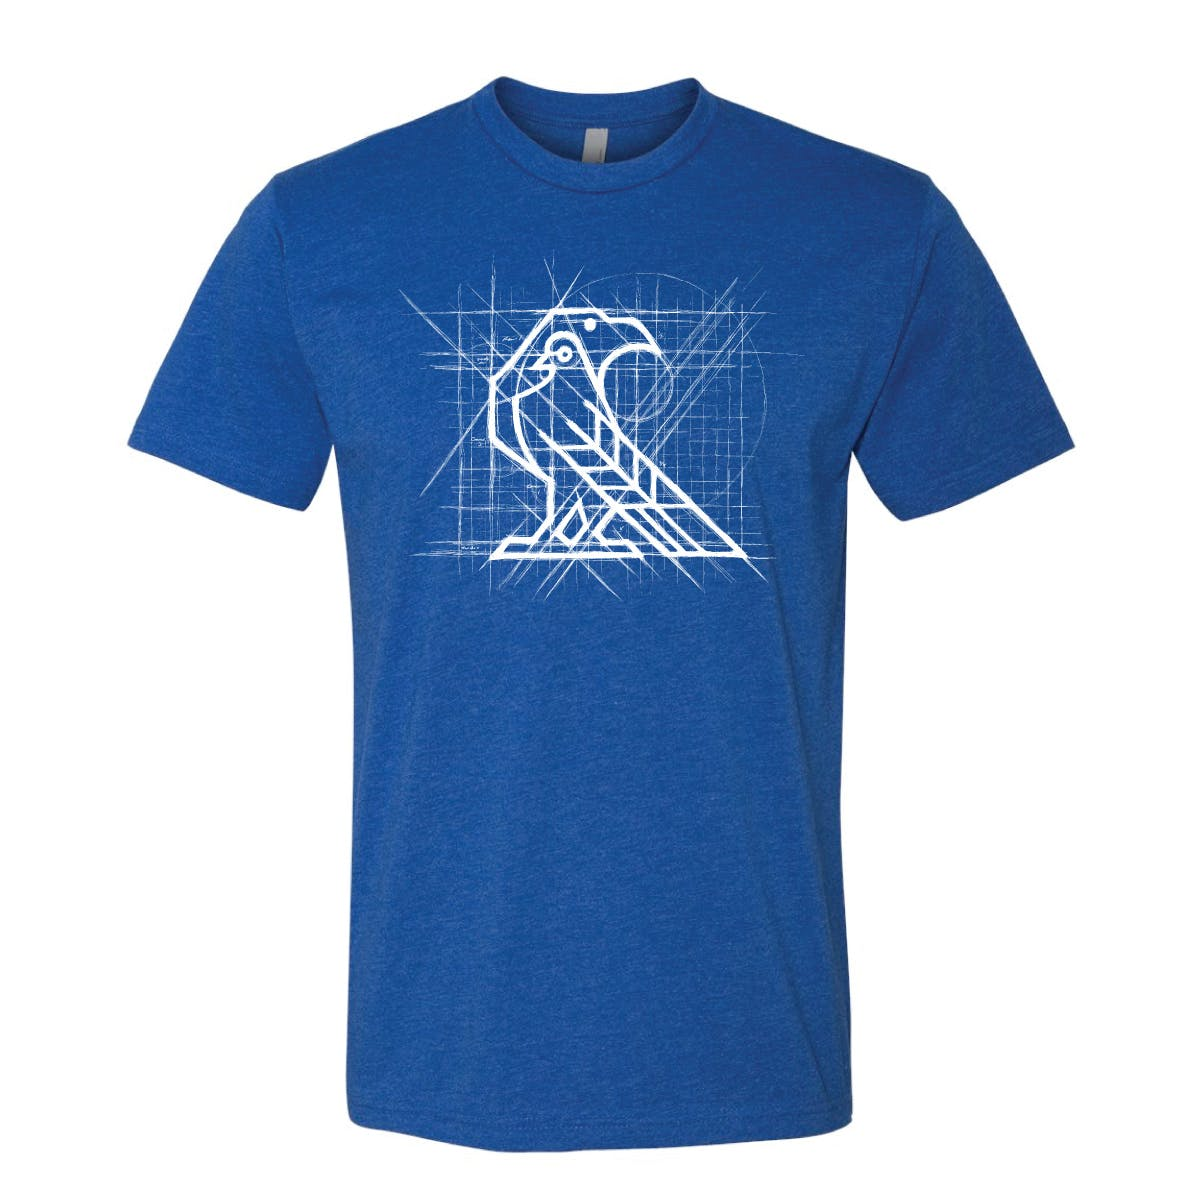 Copy of logo-t-sketch-blue-front